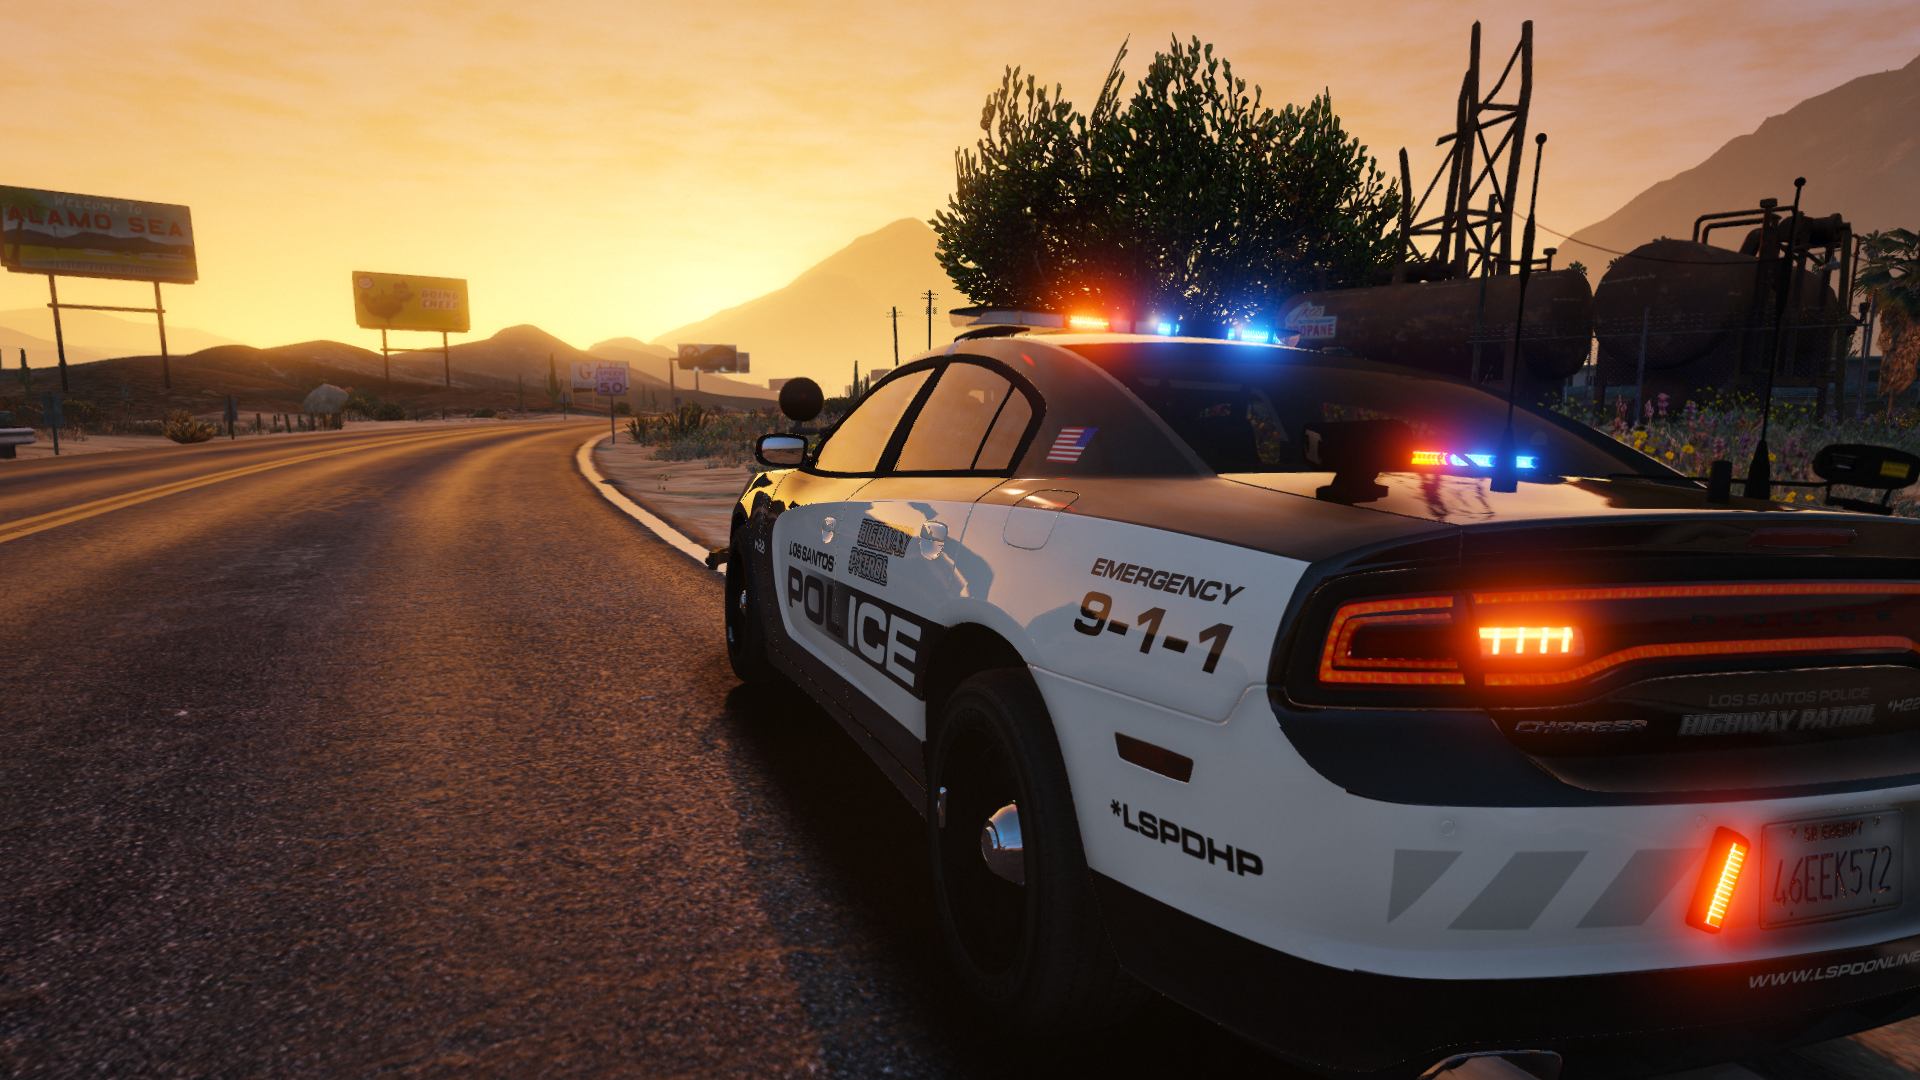 14 Charger Highway Patrol 1